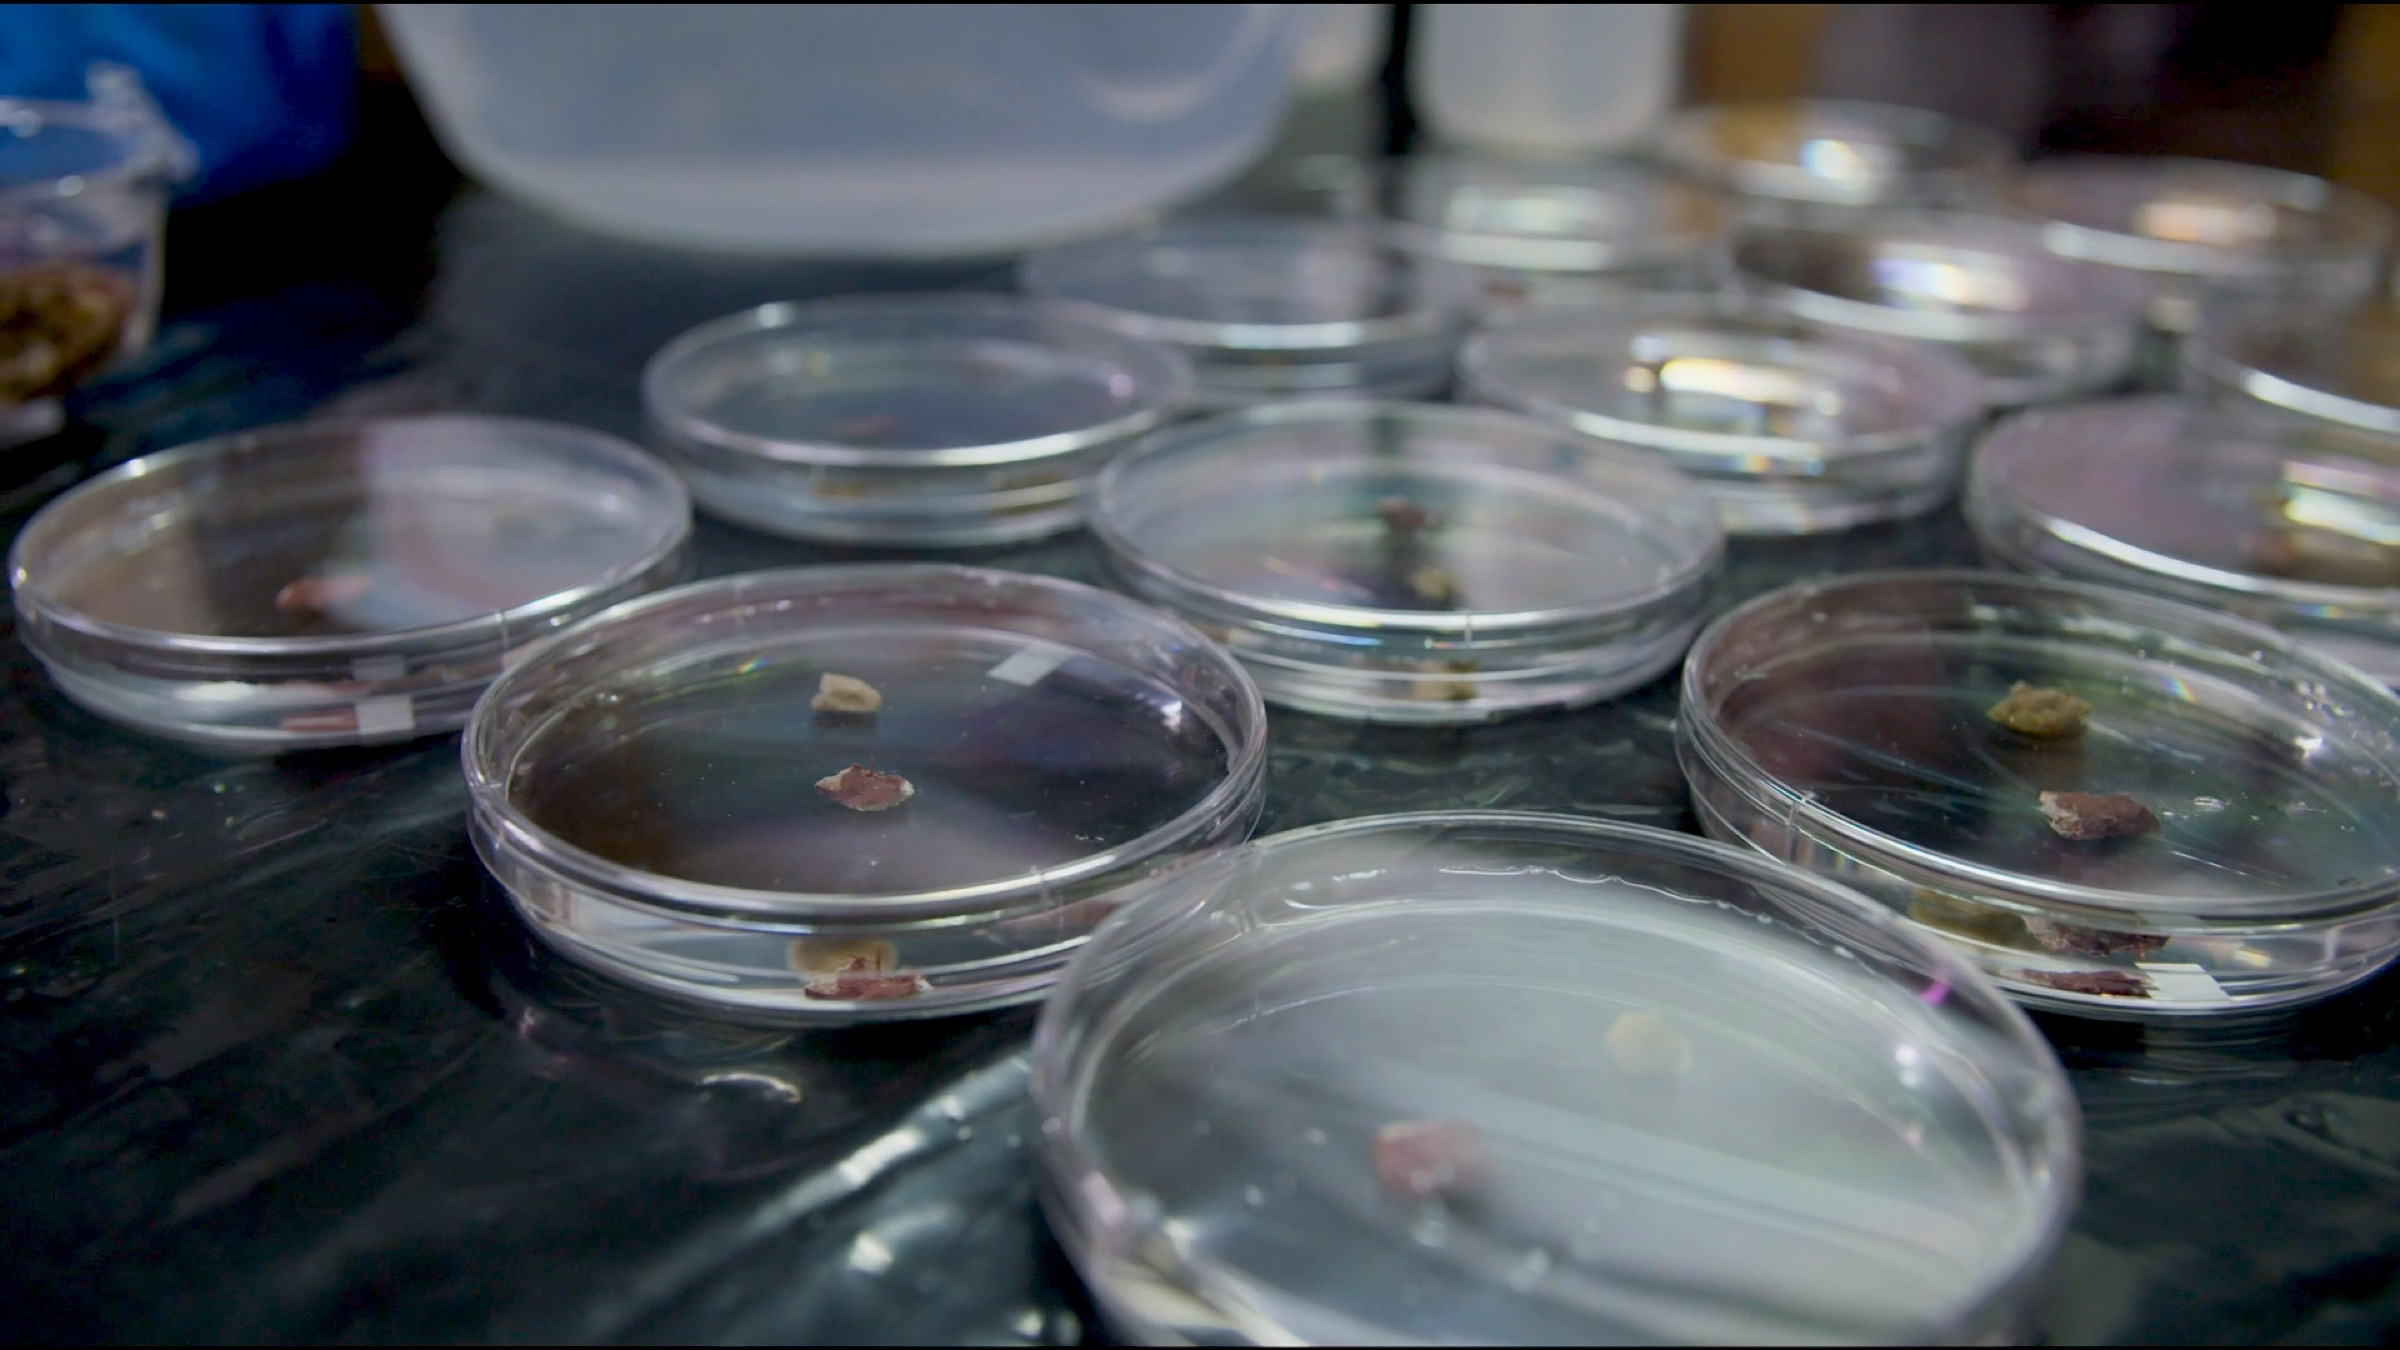 SECORE biologists are tracking the behavior of coral larvae in these Petri dishes to better understand their life history.